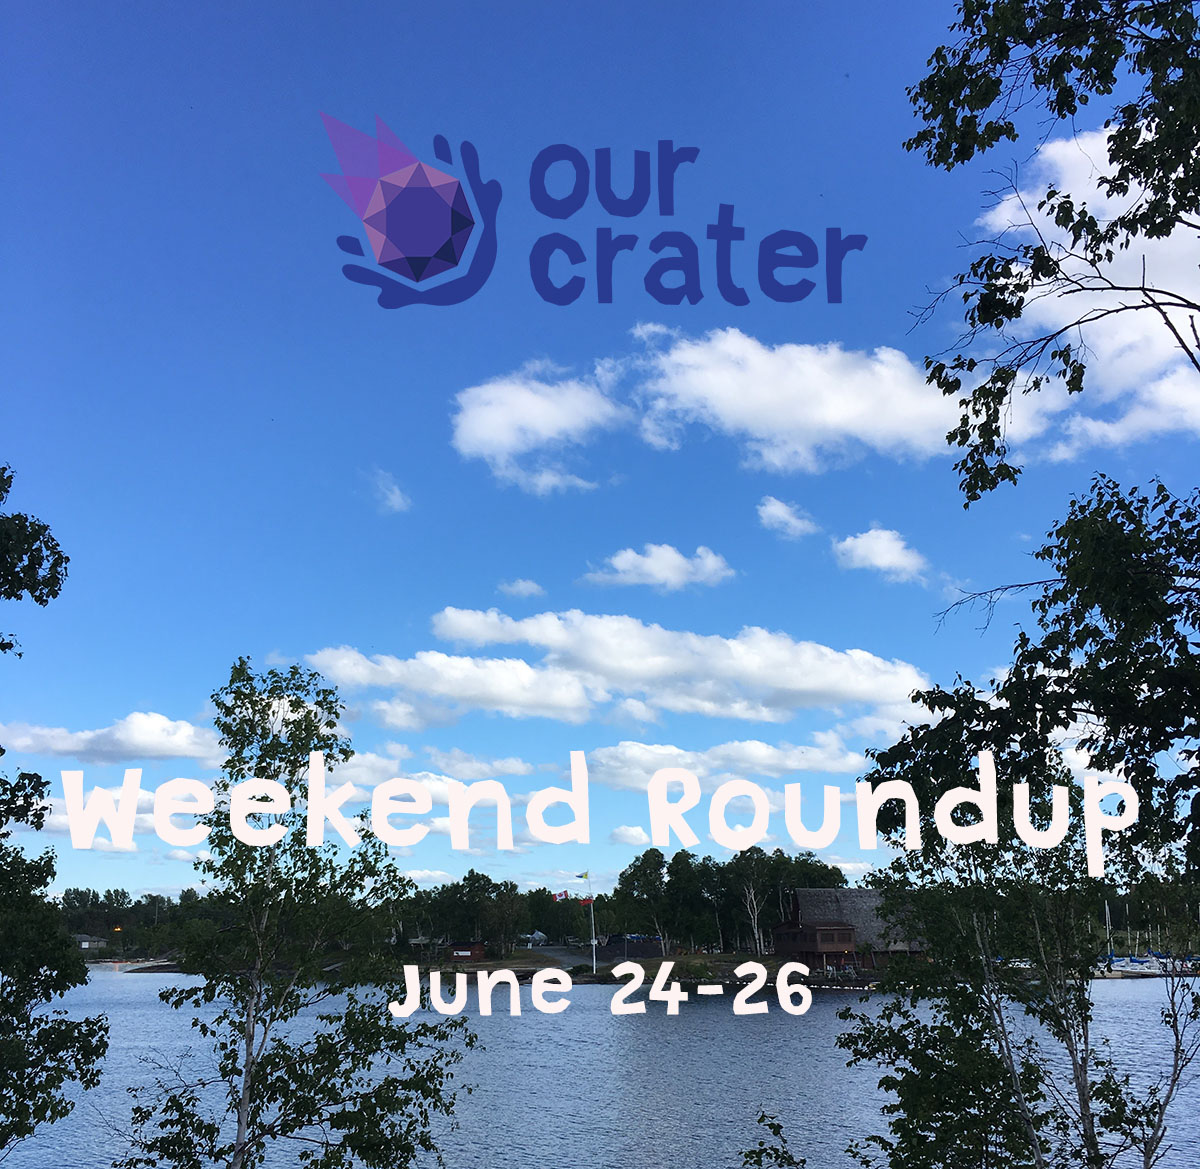 Weekend Roundup: June 24-26